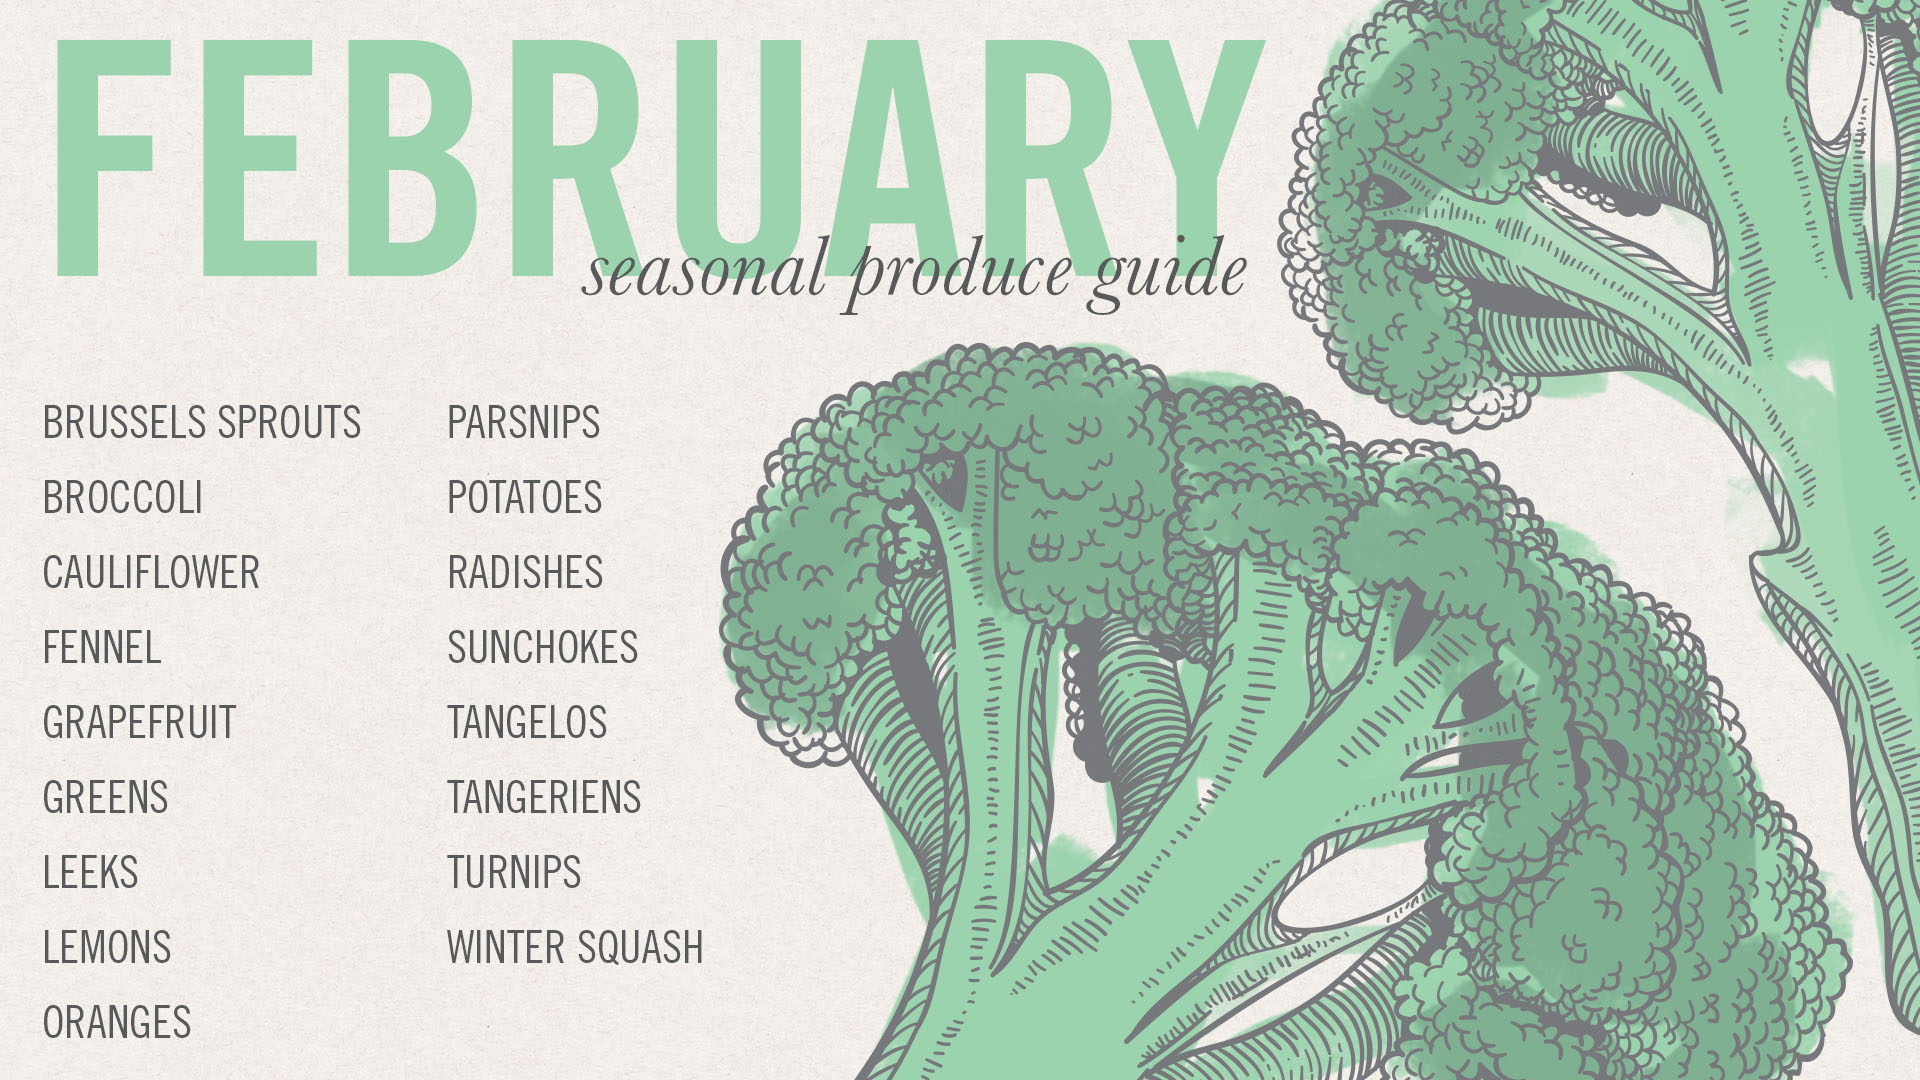 February Seasonal Produce Guide and Desktop Image • theVintageMixer.com #eatseasonal